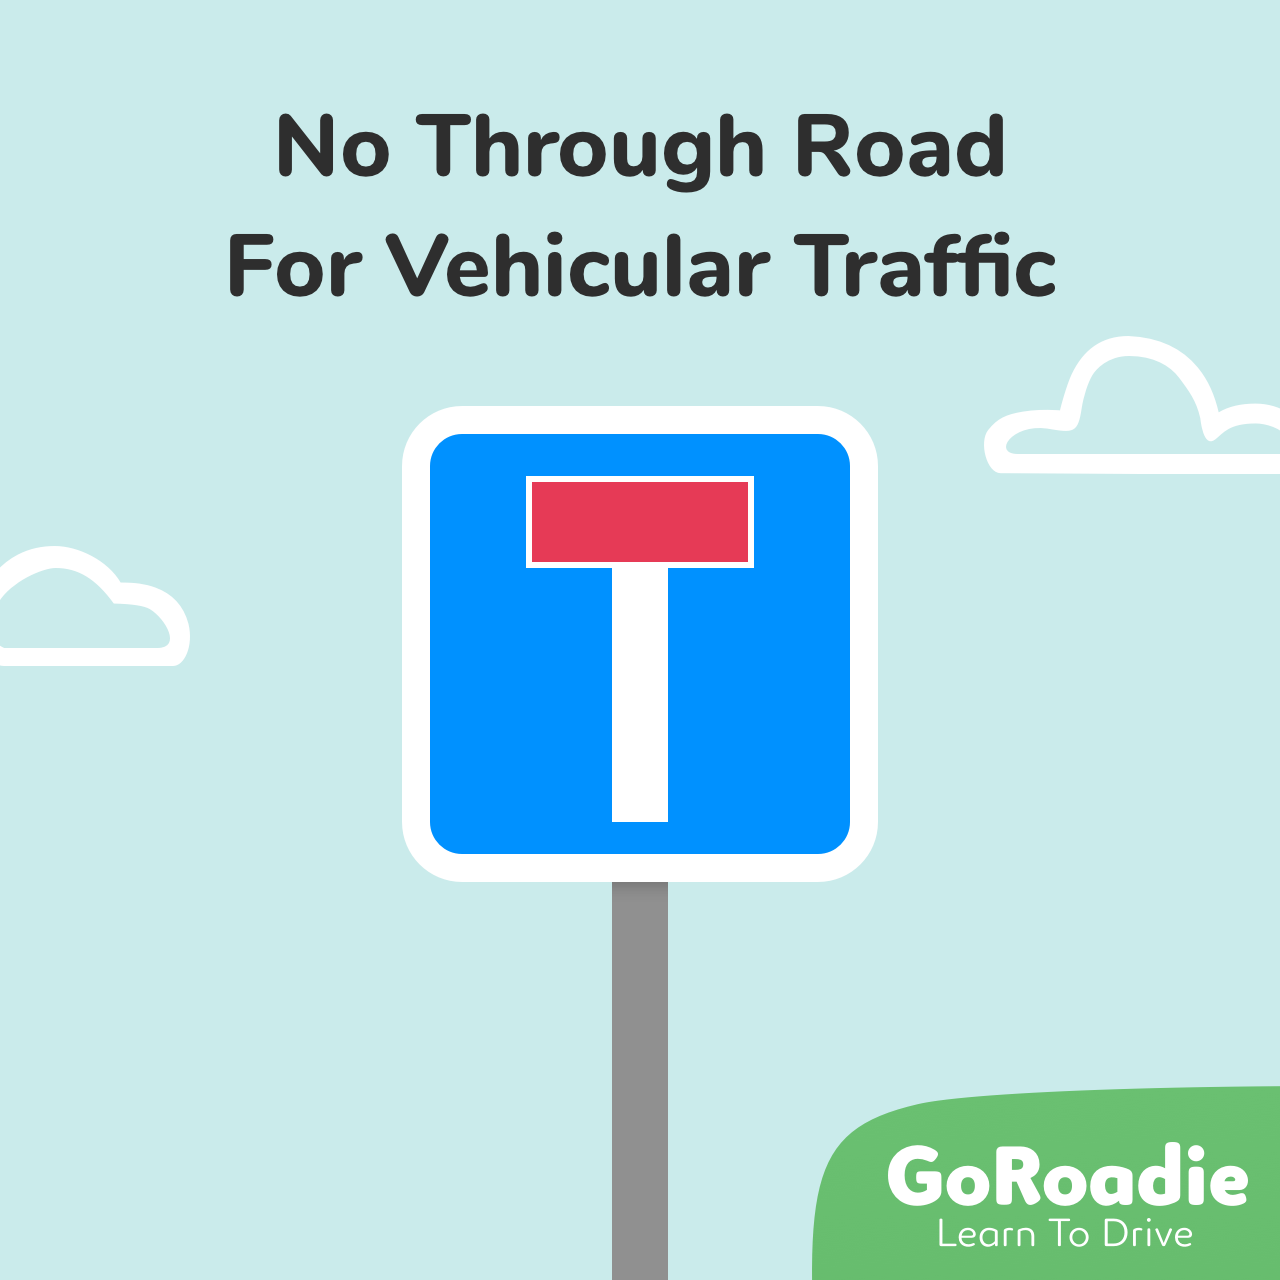 No Through Road For Vehicular Traffic traffic sign illustration